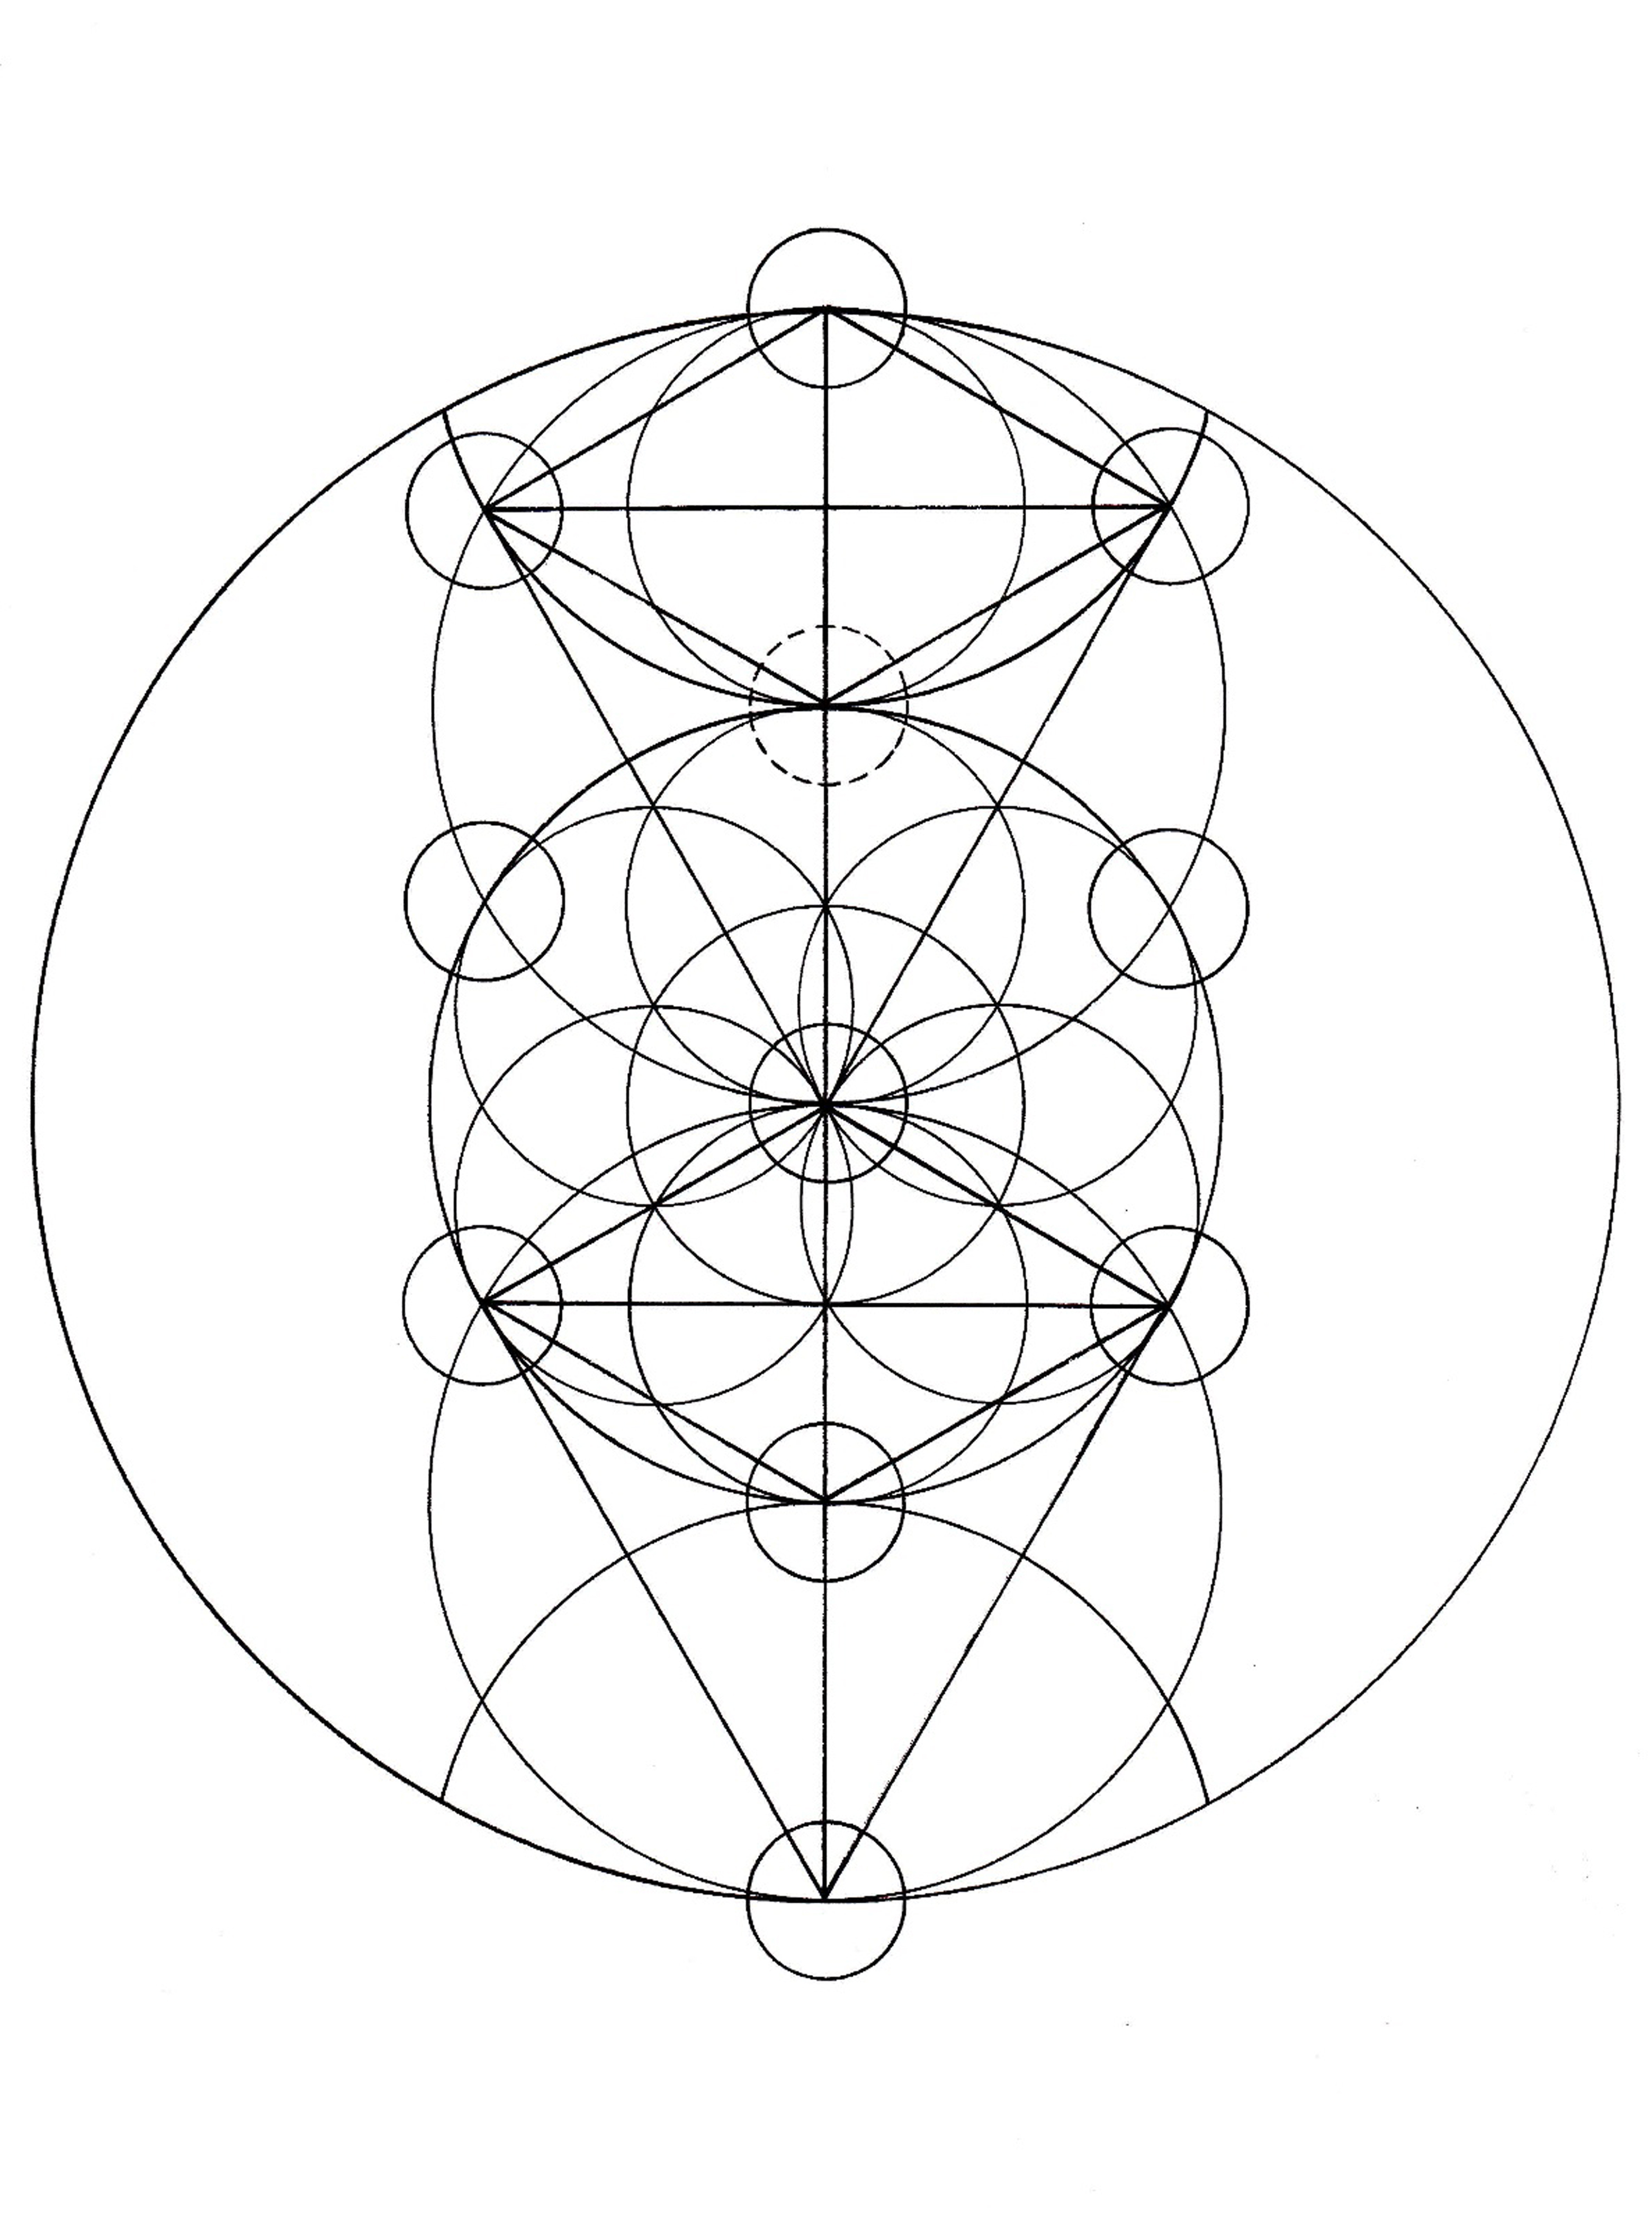 Image From The Book Patterns Of Creation